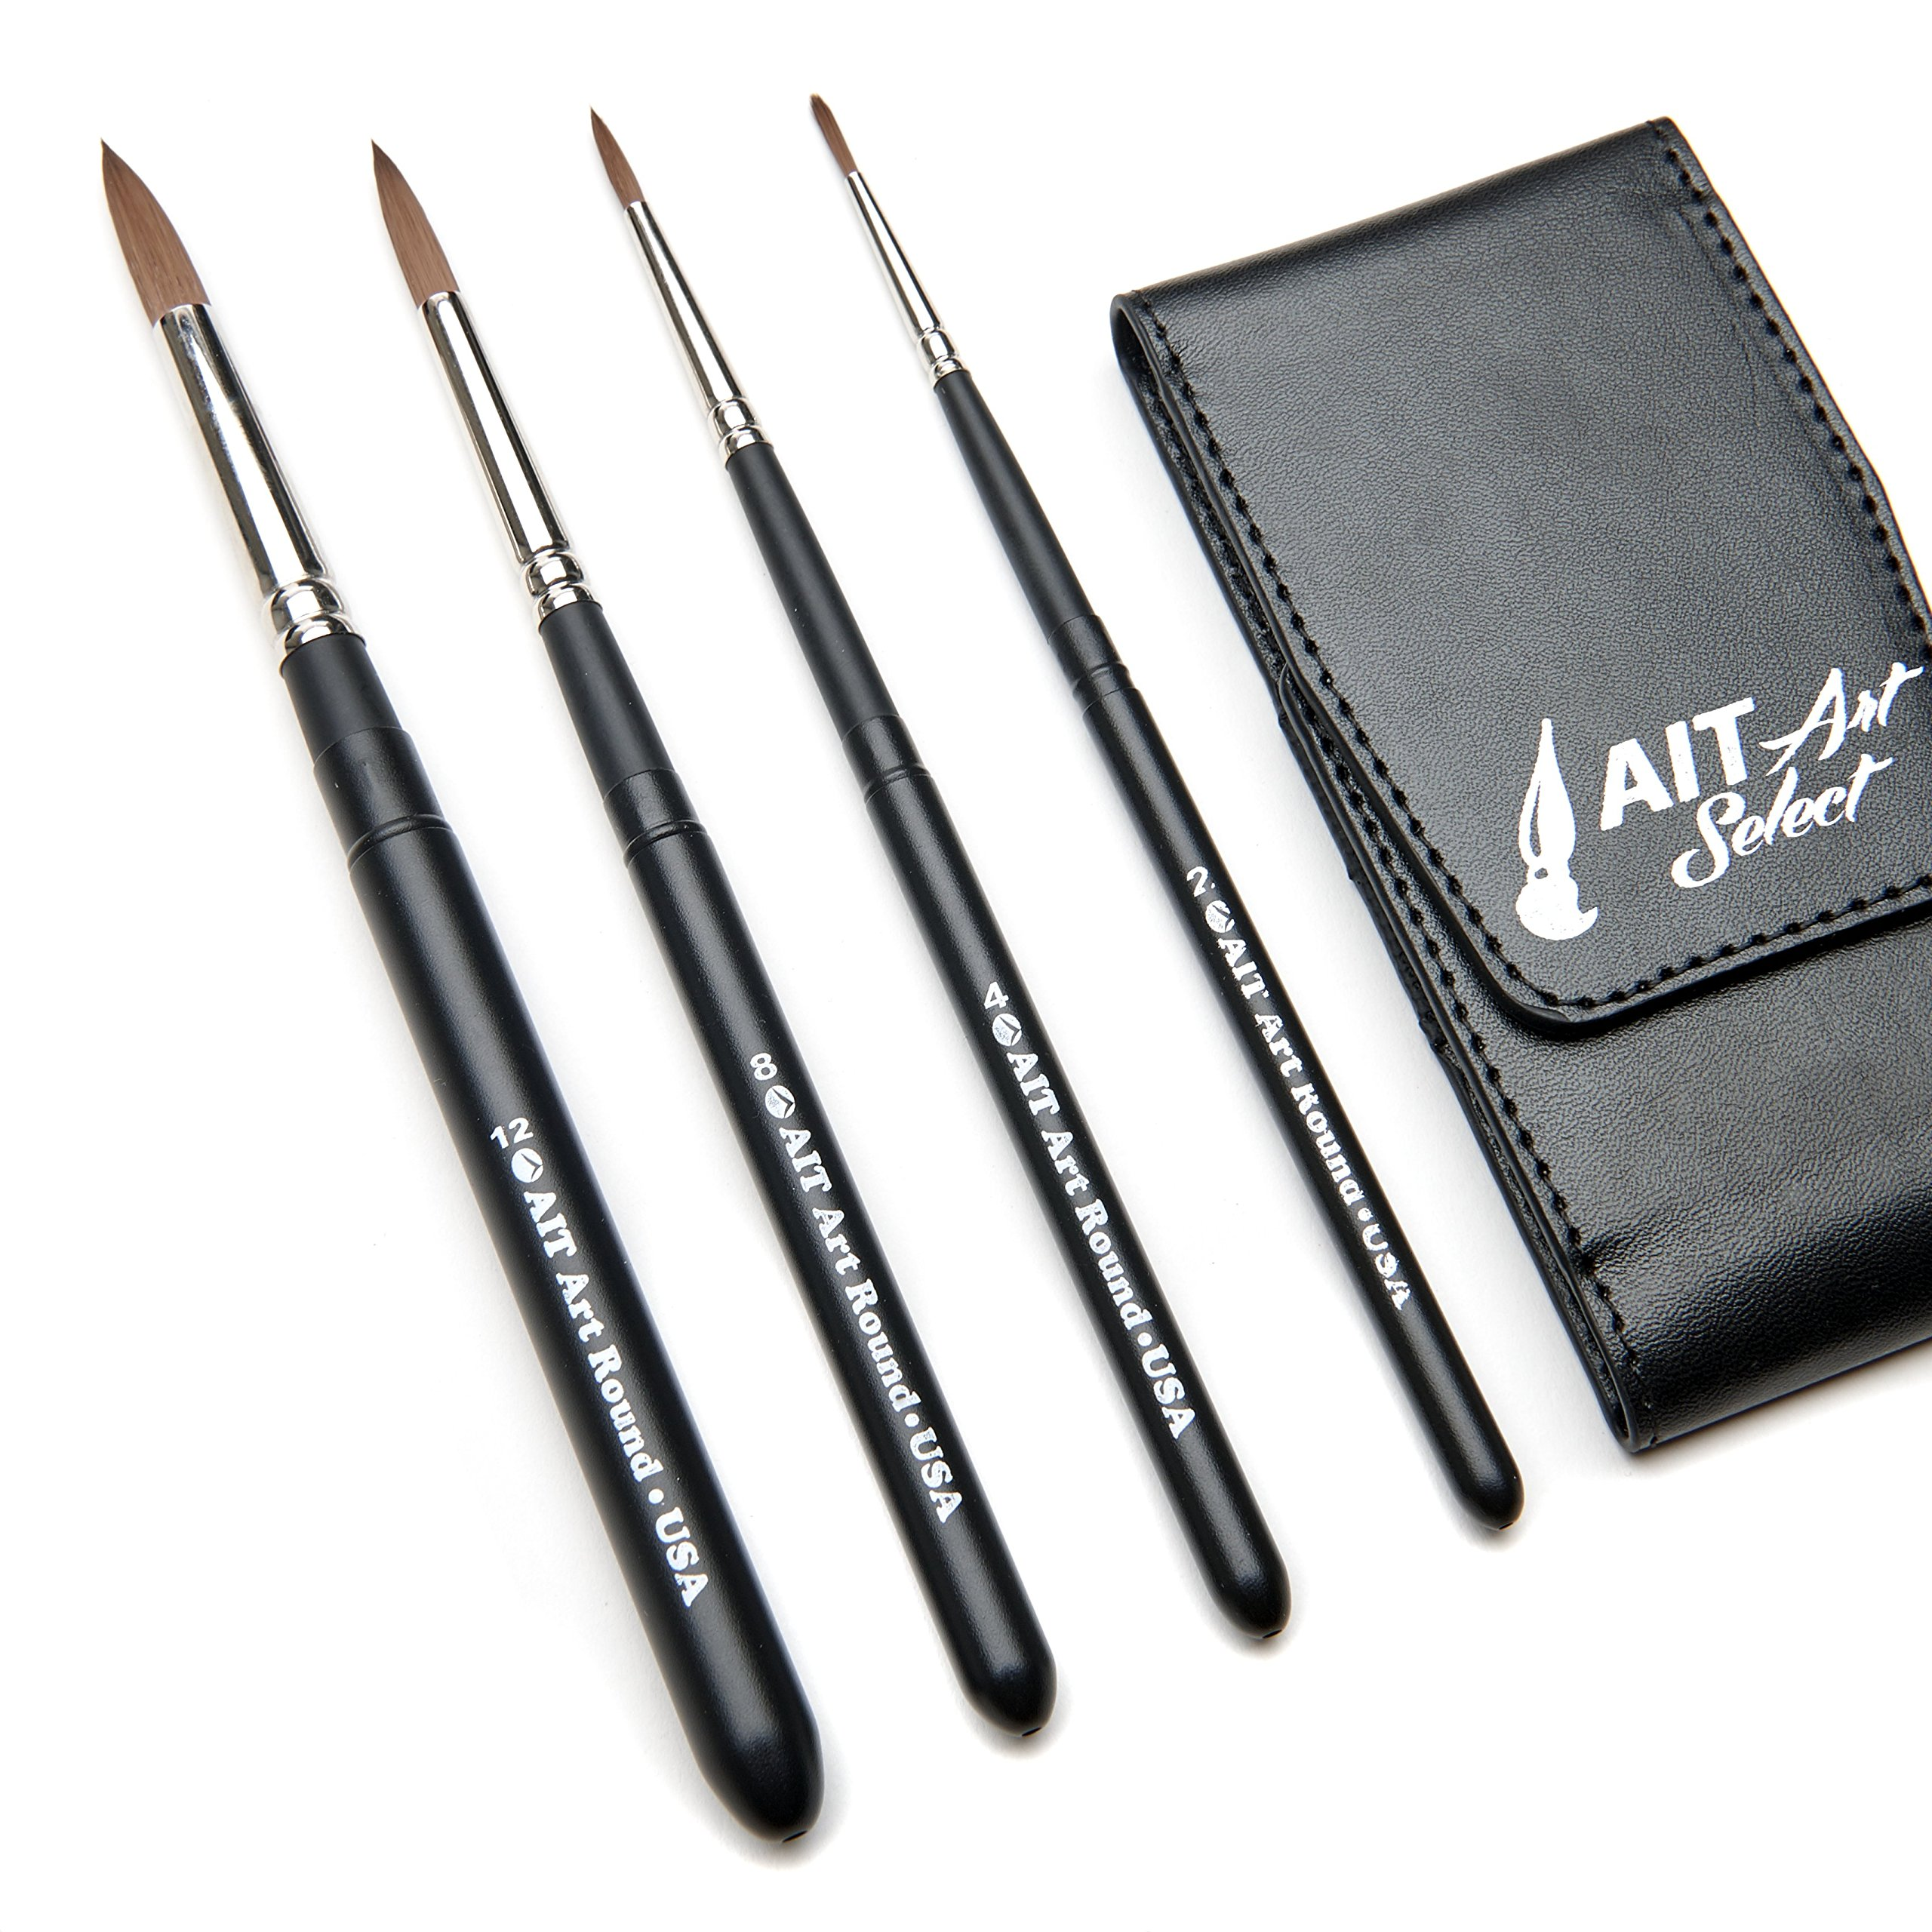 AIT Art Select Paint Brushes - Set of 4 Synthetic